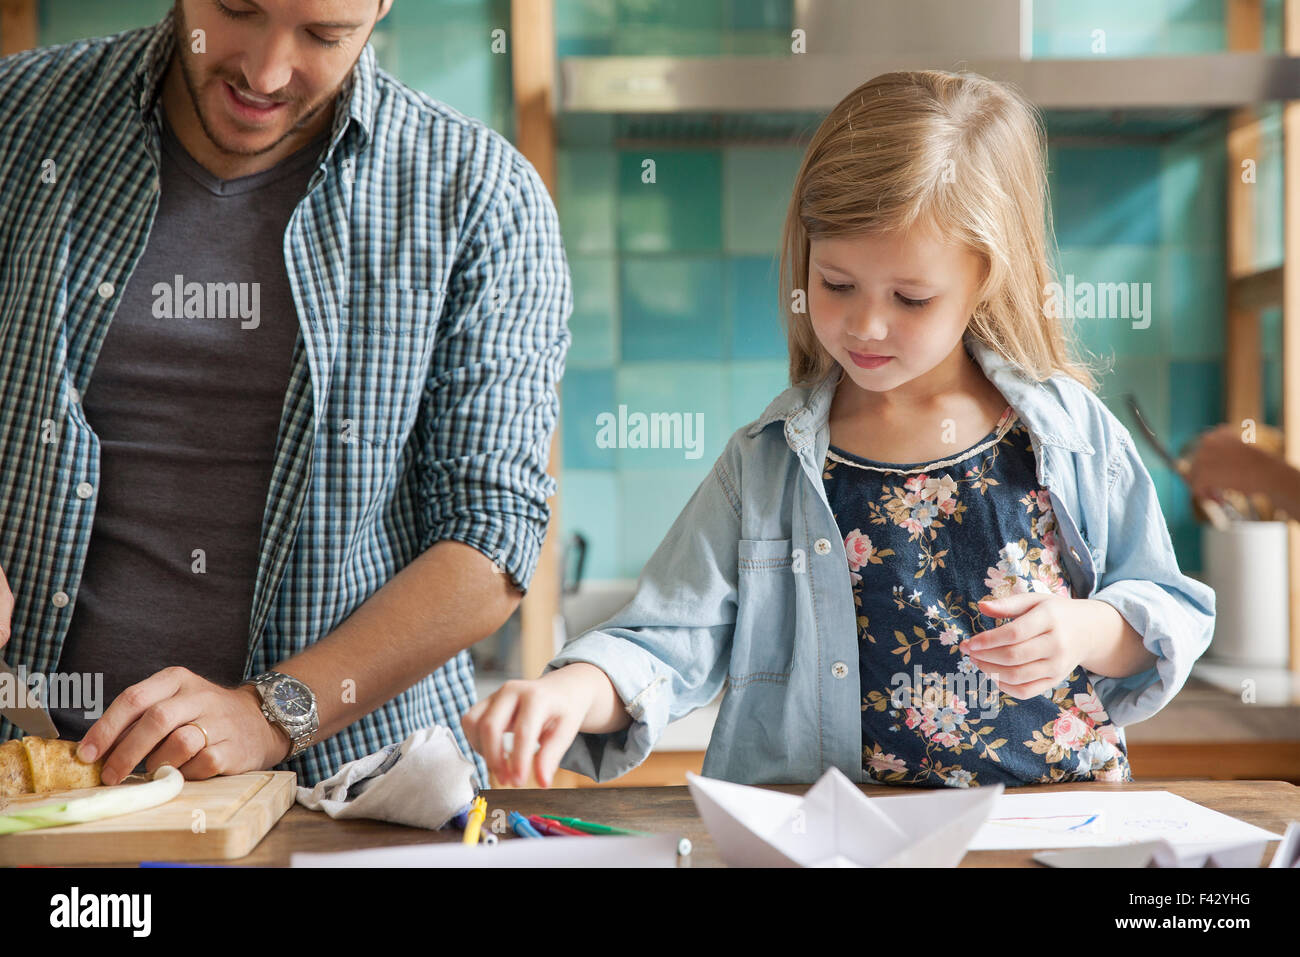 Little girl drawing in kitchen while family prepares meal - Stock Image